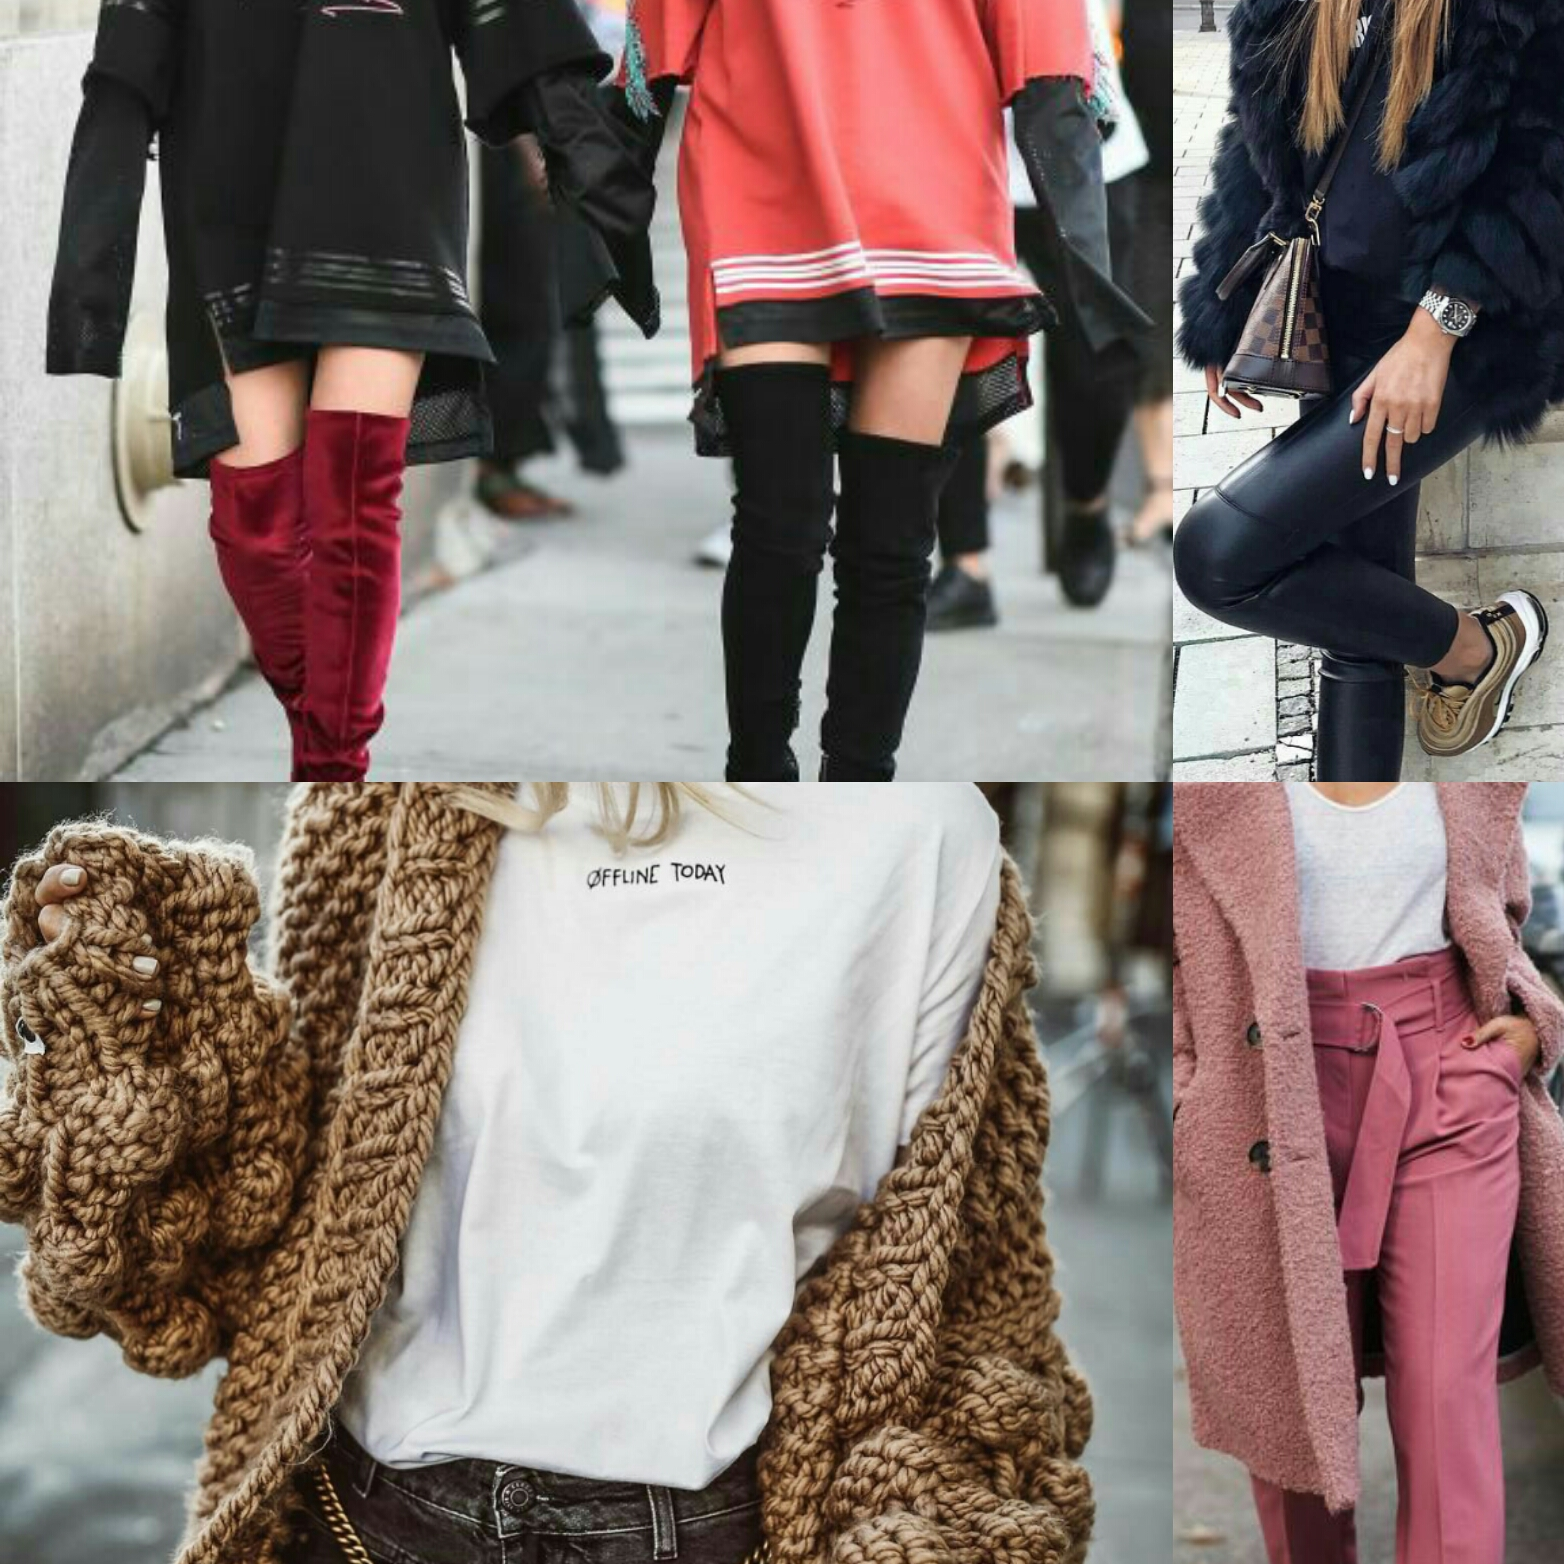 Outfit 2018 inverno sc74 regardsdefemmes for Outfit ufficio 2018